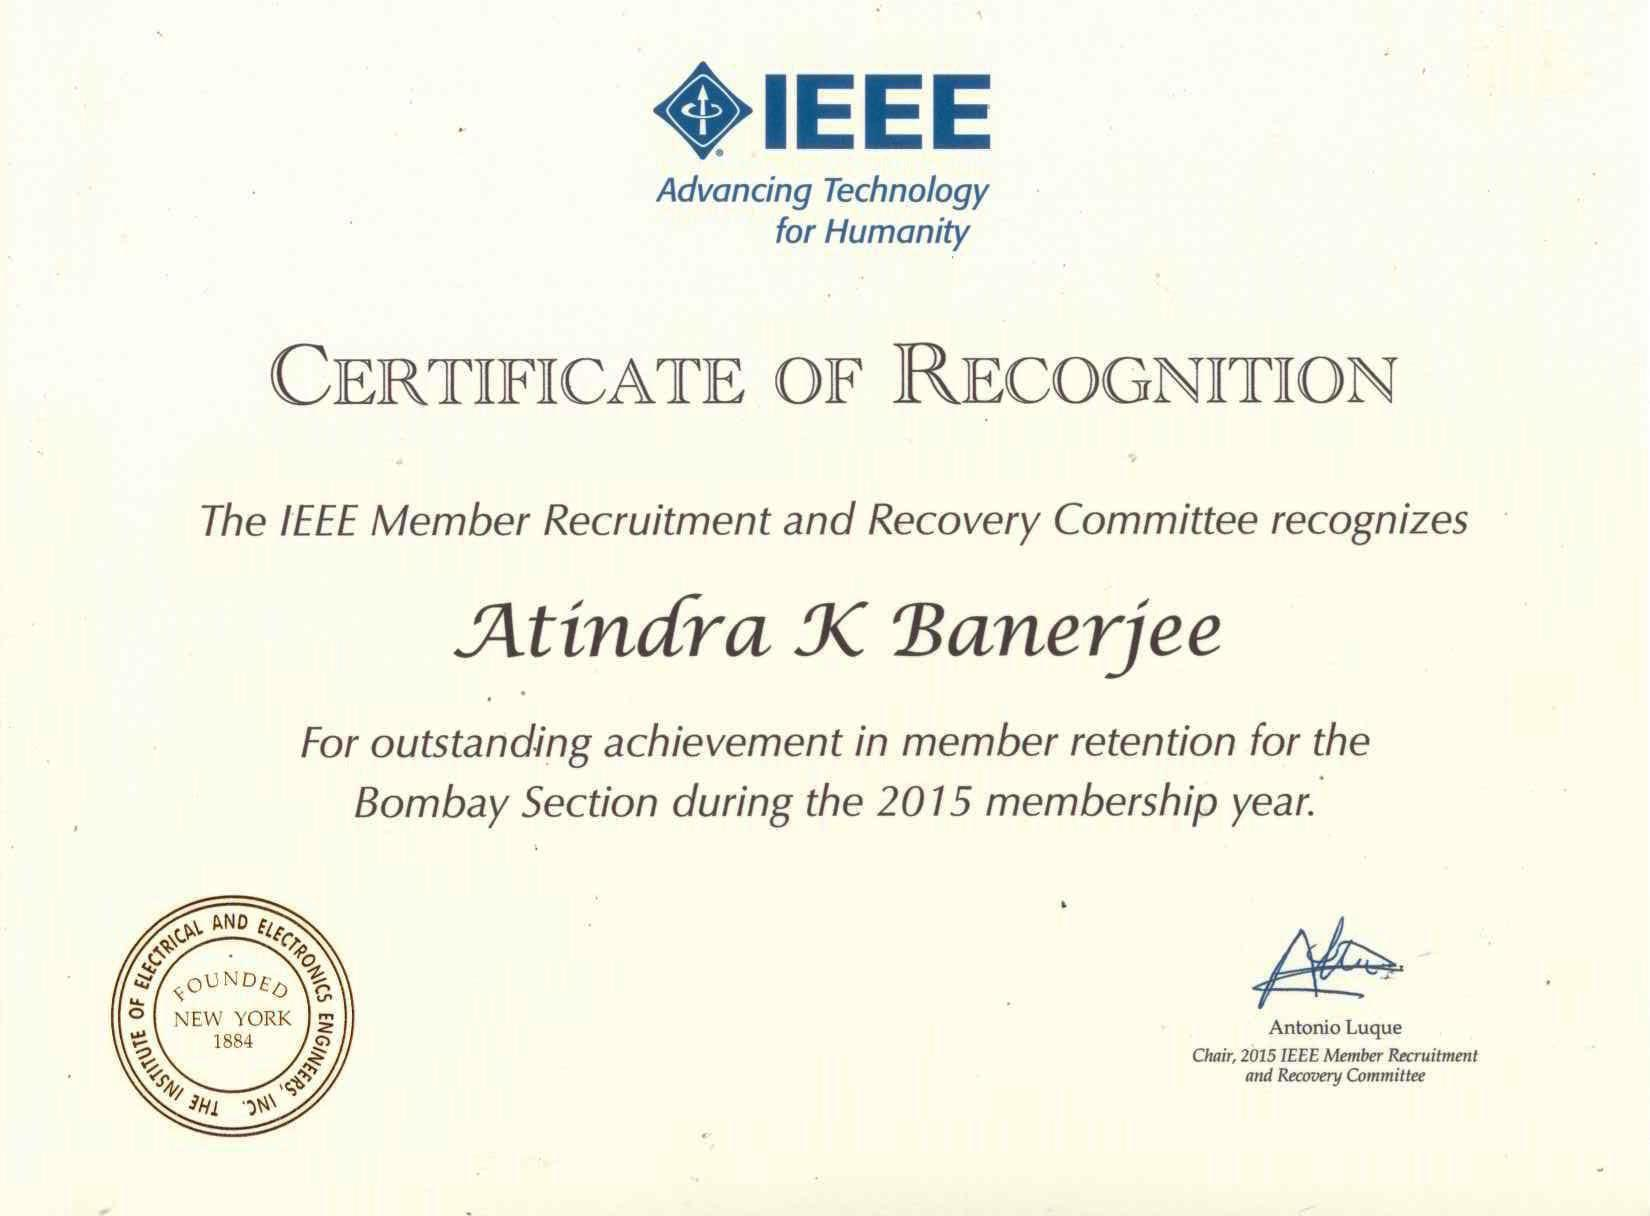 volunteer recognition awards ieee bombay section